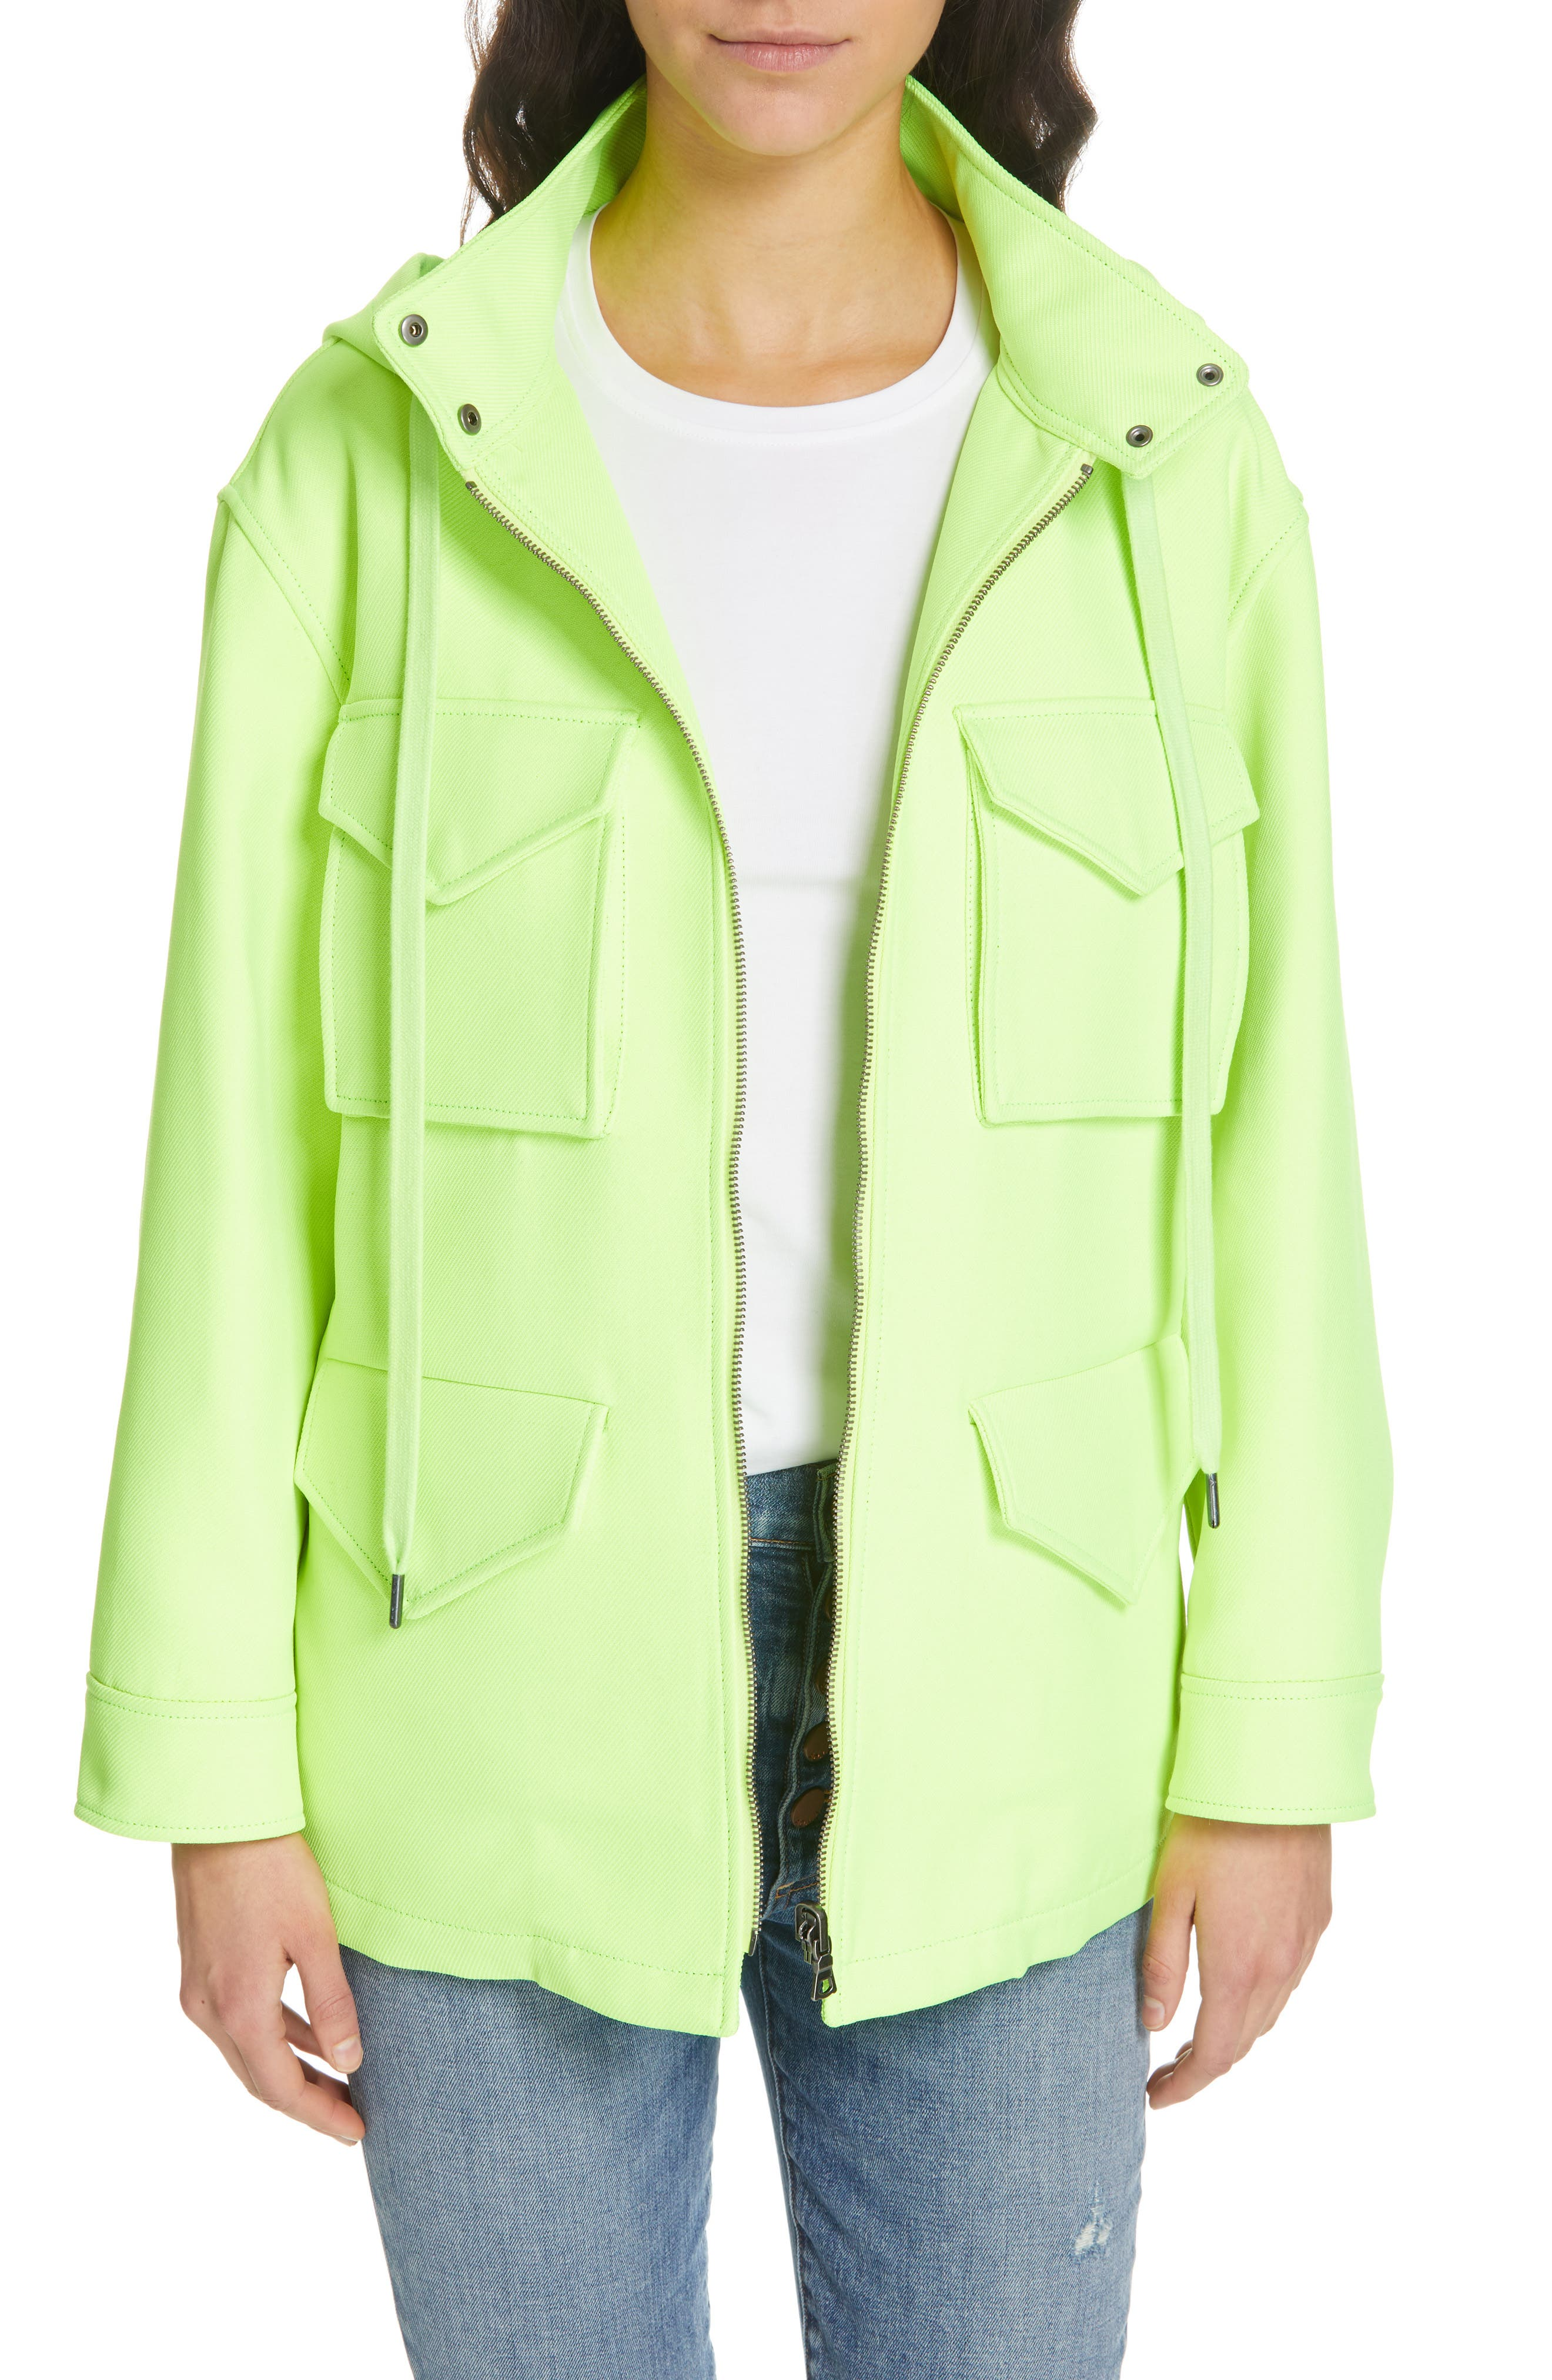 ALICE + OLIVIA Russo Hooded Jacket, Main, color, NEON YELLOW